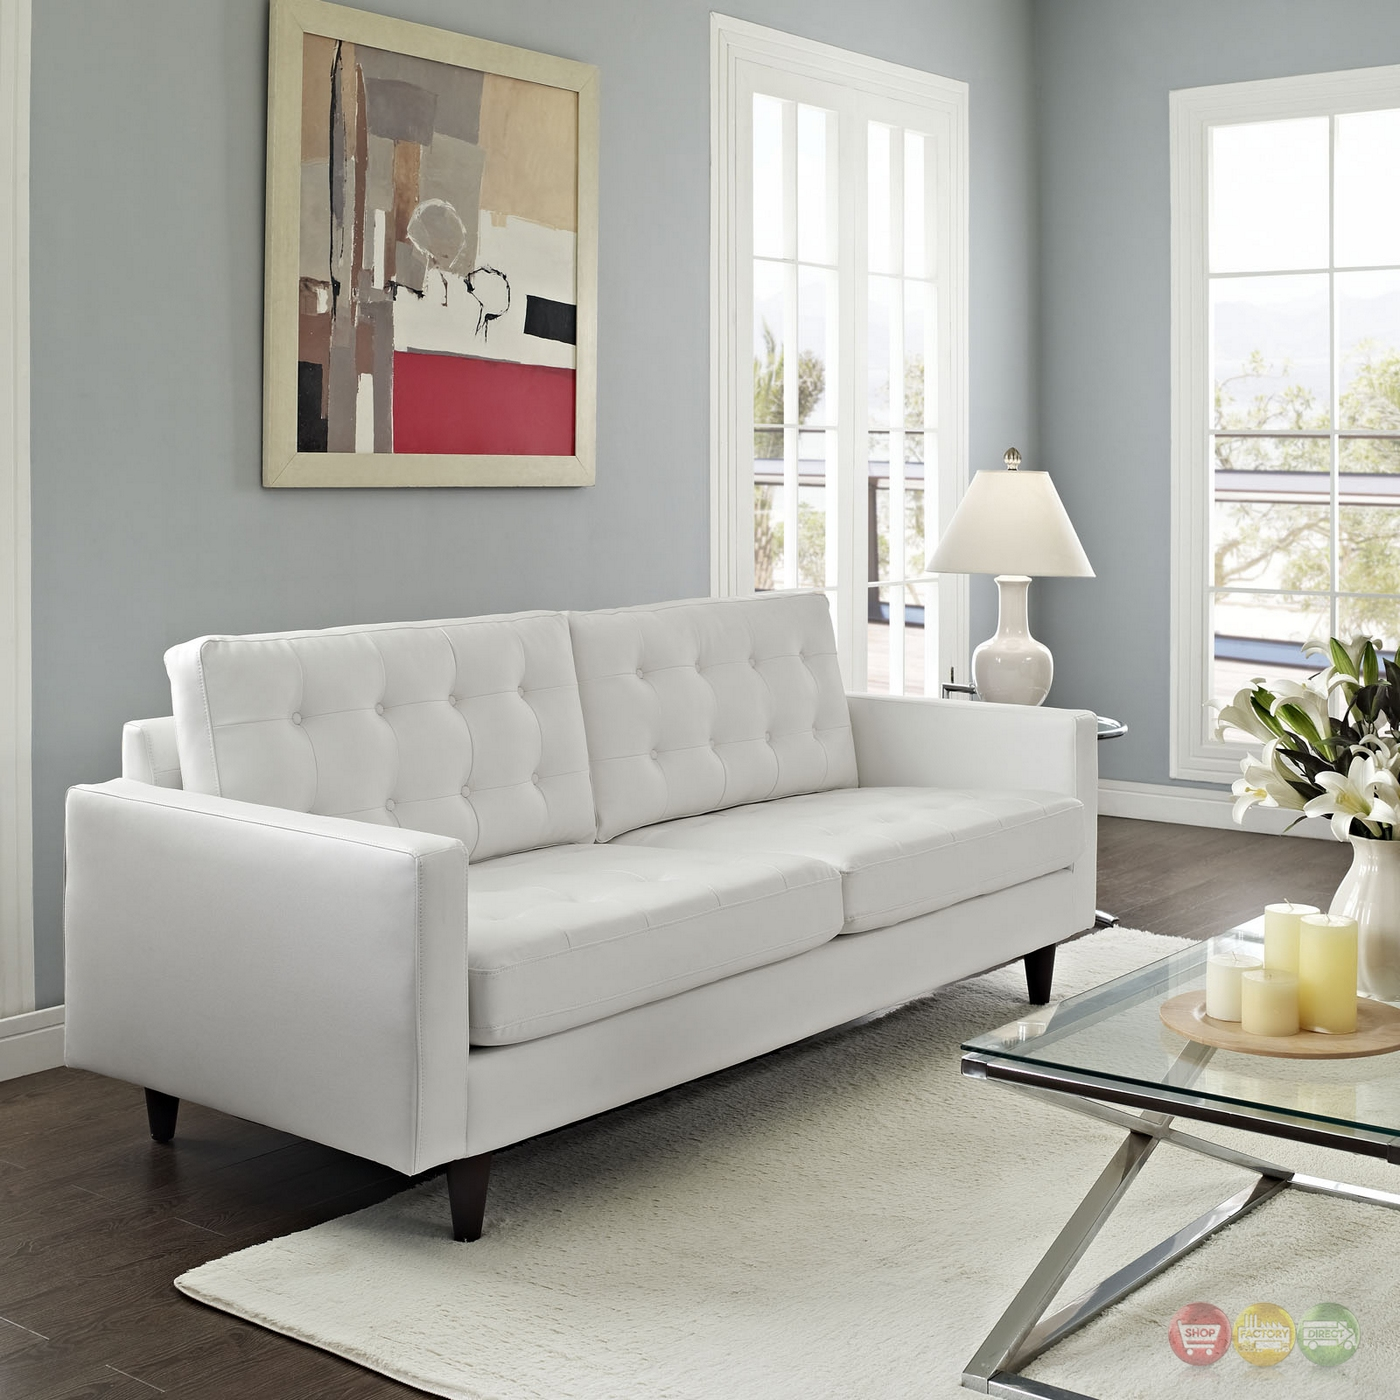 White Leather Sofa Rooms To Go: Empress Contemporary Button-tufted Leather Sofa, White